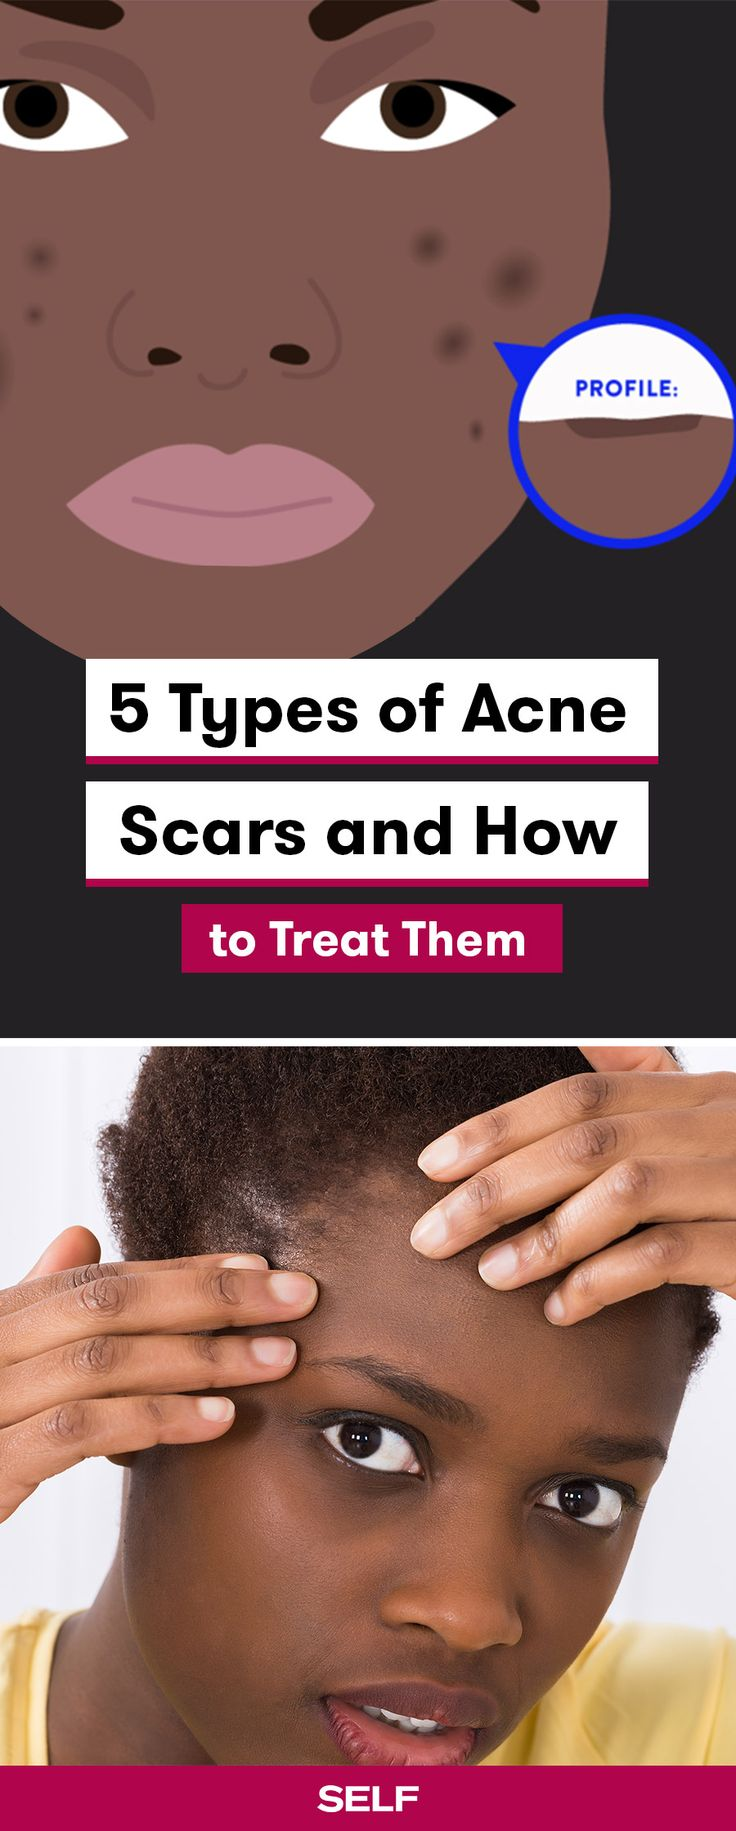 Breakouts can come and go, but the scars they leave behind can linger for years (or more). Long-lasting scars typically turn up after a recurring bout with cystic acne. Acne scars take many different forms. You might see tiny pockmarks, a swollen keloid, or a discolored area on the skin. And just like the types of scars vary, there isn't a one-size-fits-all fix. Your dermatologist can use a combination of treatments including lasers, chemical peels, or fillers to minimize the spots.